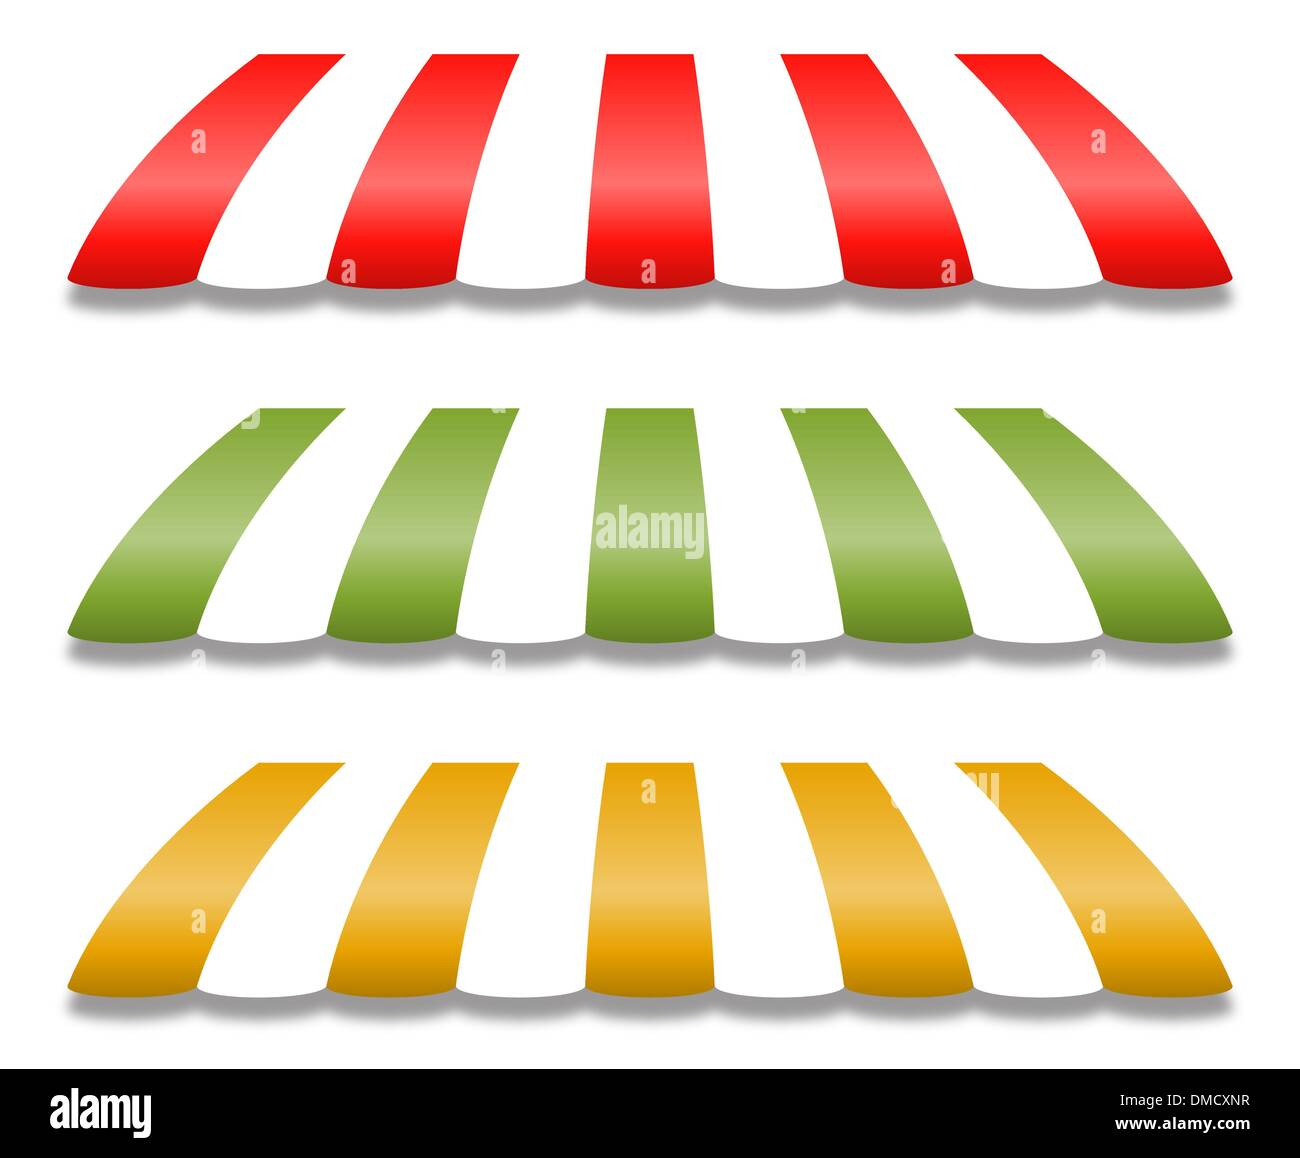 Striped Awnings Stock Photos & Striped Awnings Stock Images - Alamy